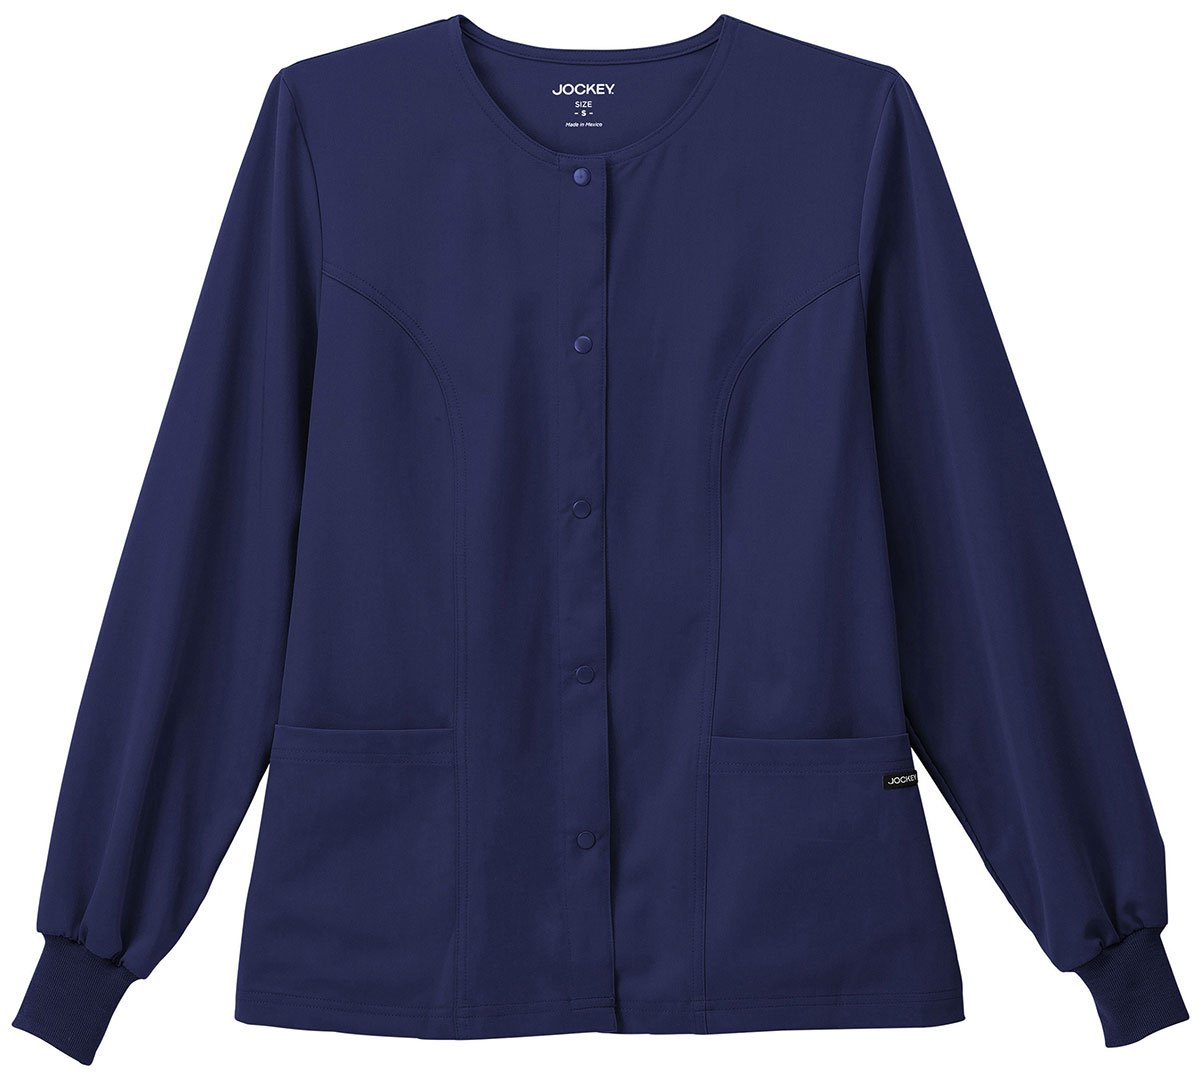 Classic Fit Collection By Jockey Women's Round Neck Solid Scrub Jacket XX-Large New Navy